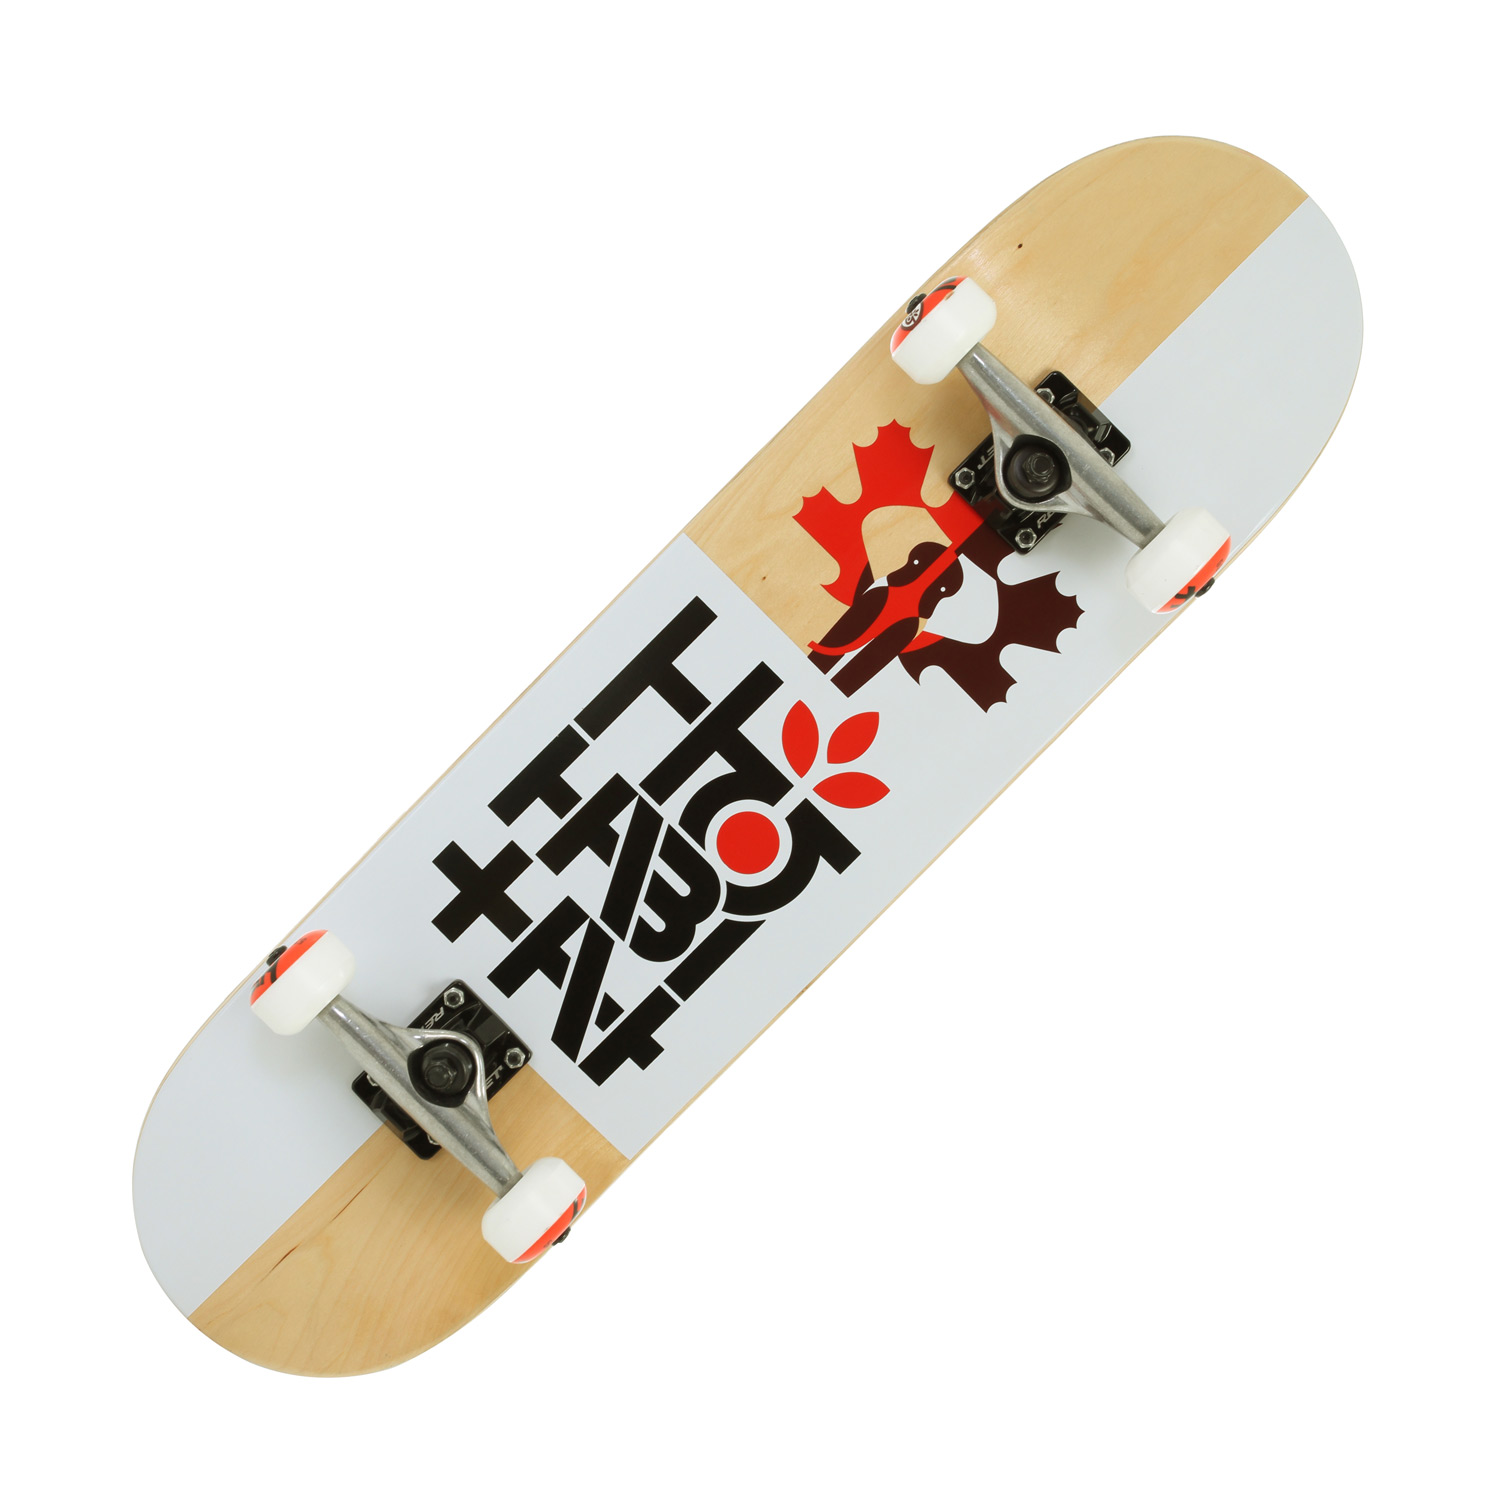 "Skateboard Elephants, Rhinoceroses, Hippopotami, Wild Boars, Pigs, Warthogs, Tapirs, Aardvarks and Hogs are all Pachyderms. Science class is over time to go skate! Key Features of the Habitat Pachyderm Skateboard Complete: Complete: 31"" long x 8"" wide. - $99.95"